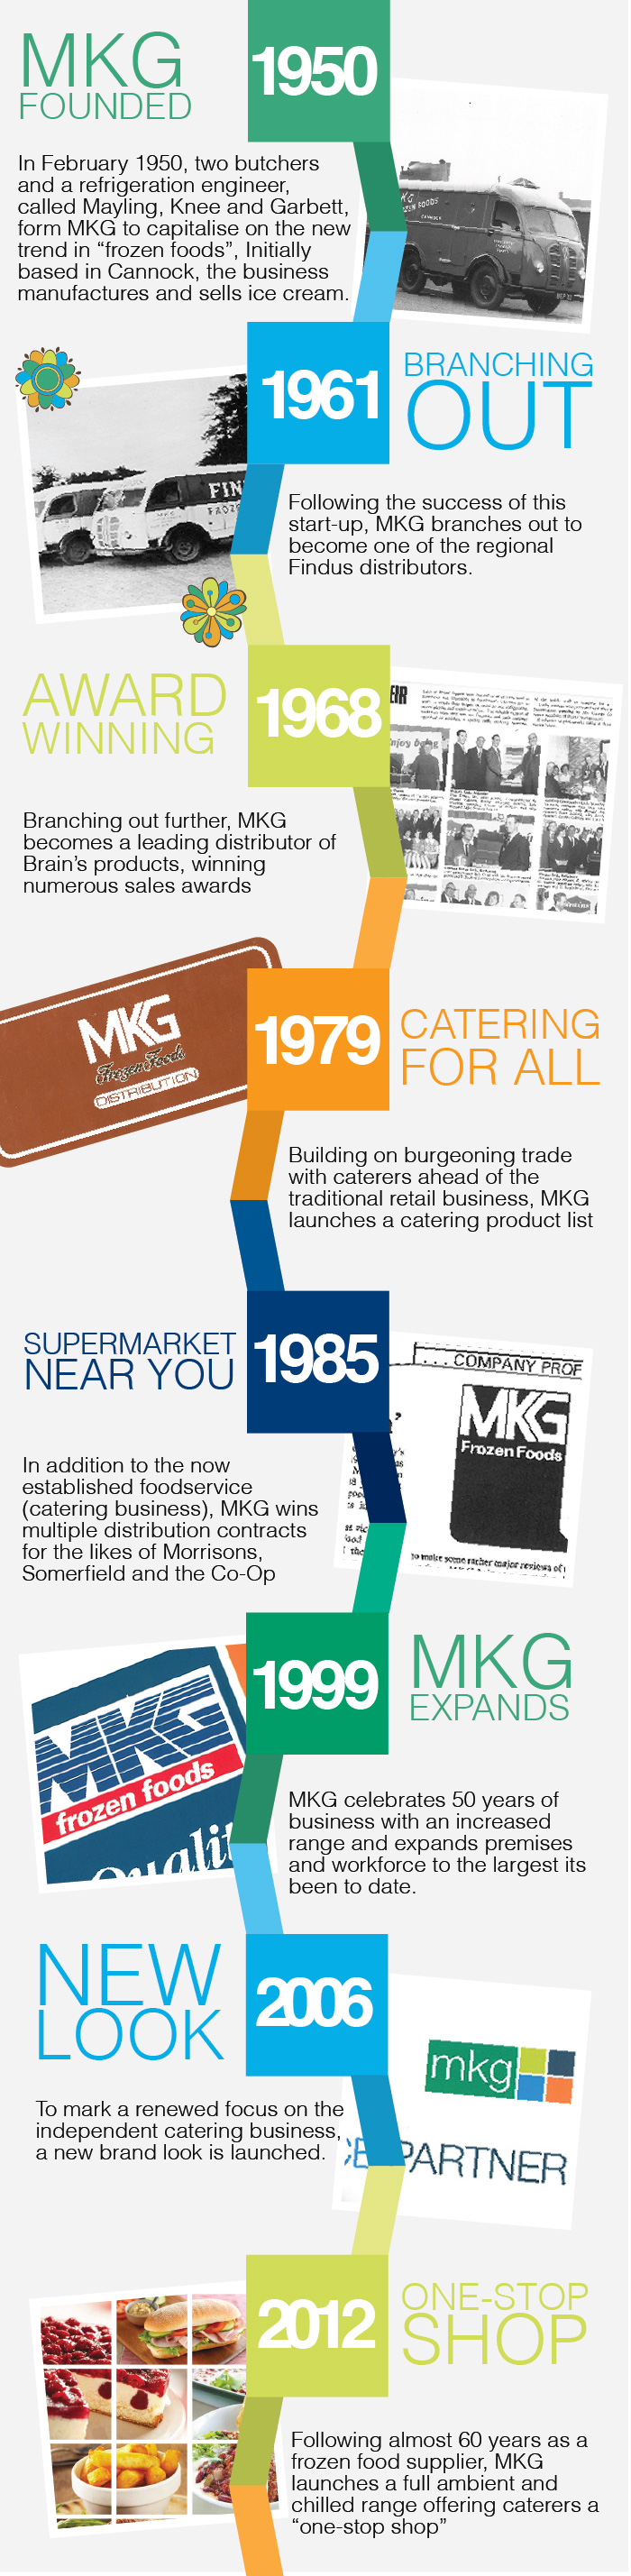 About us: A timeline of MKG